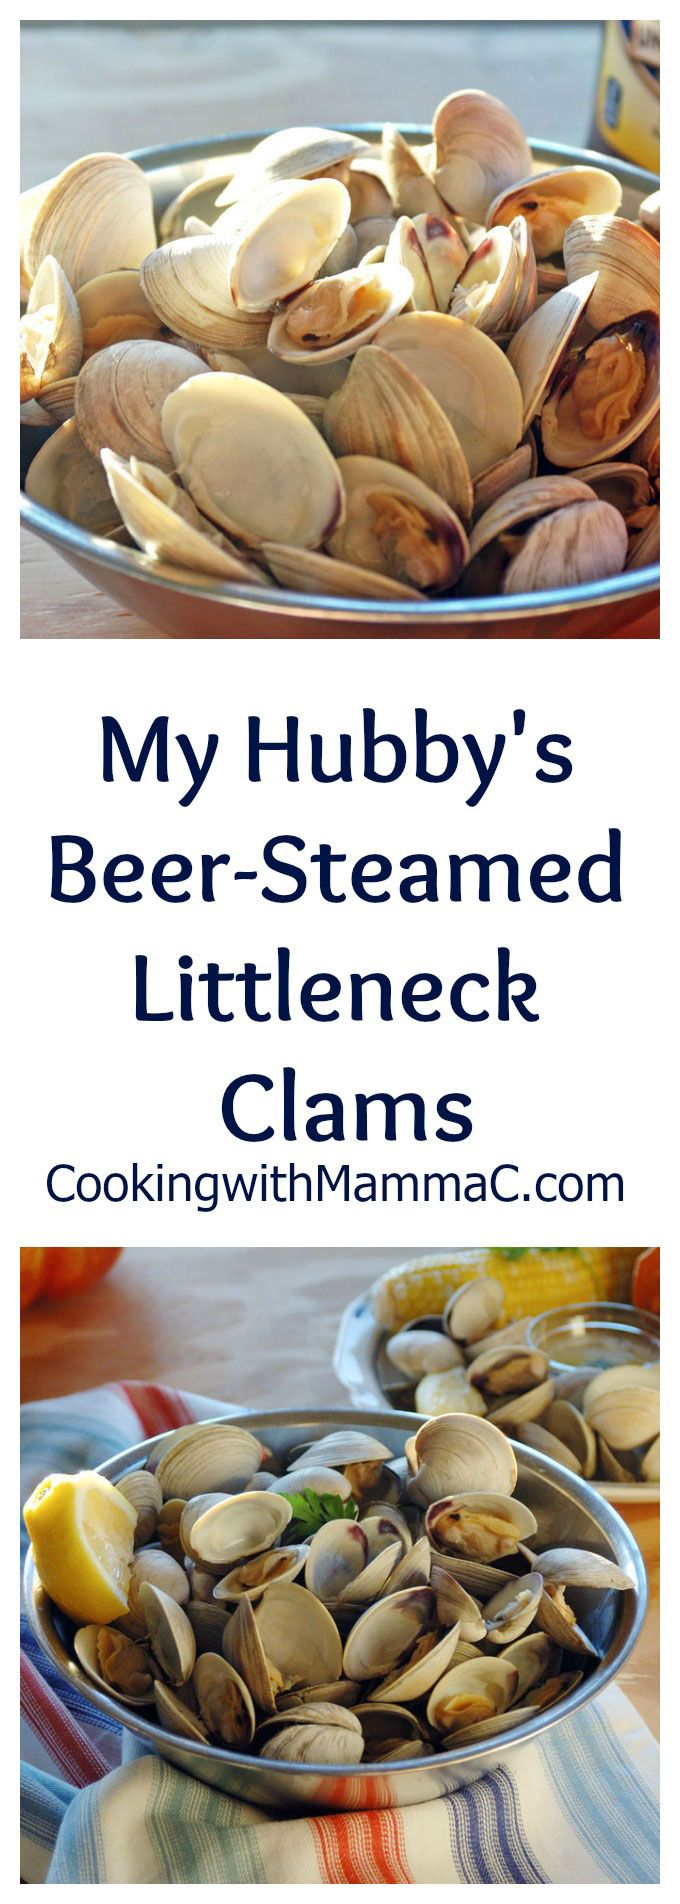 My Hubby's Beer-Steamed Littleneck Clams are so good dipped in melted butter…#sponsored #MomentstoSavor @tradewindstea